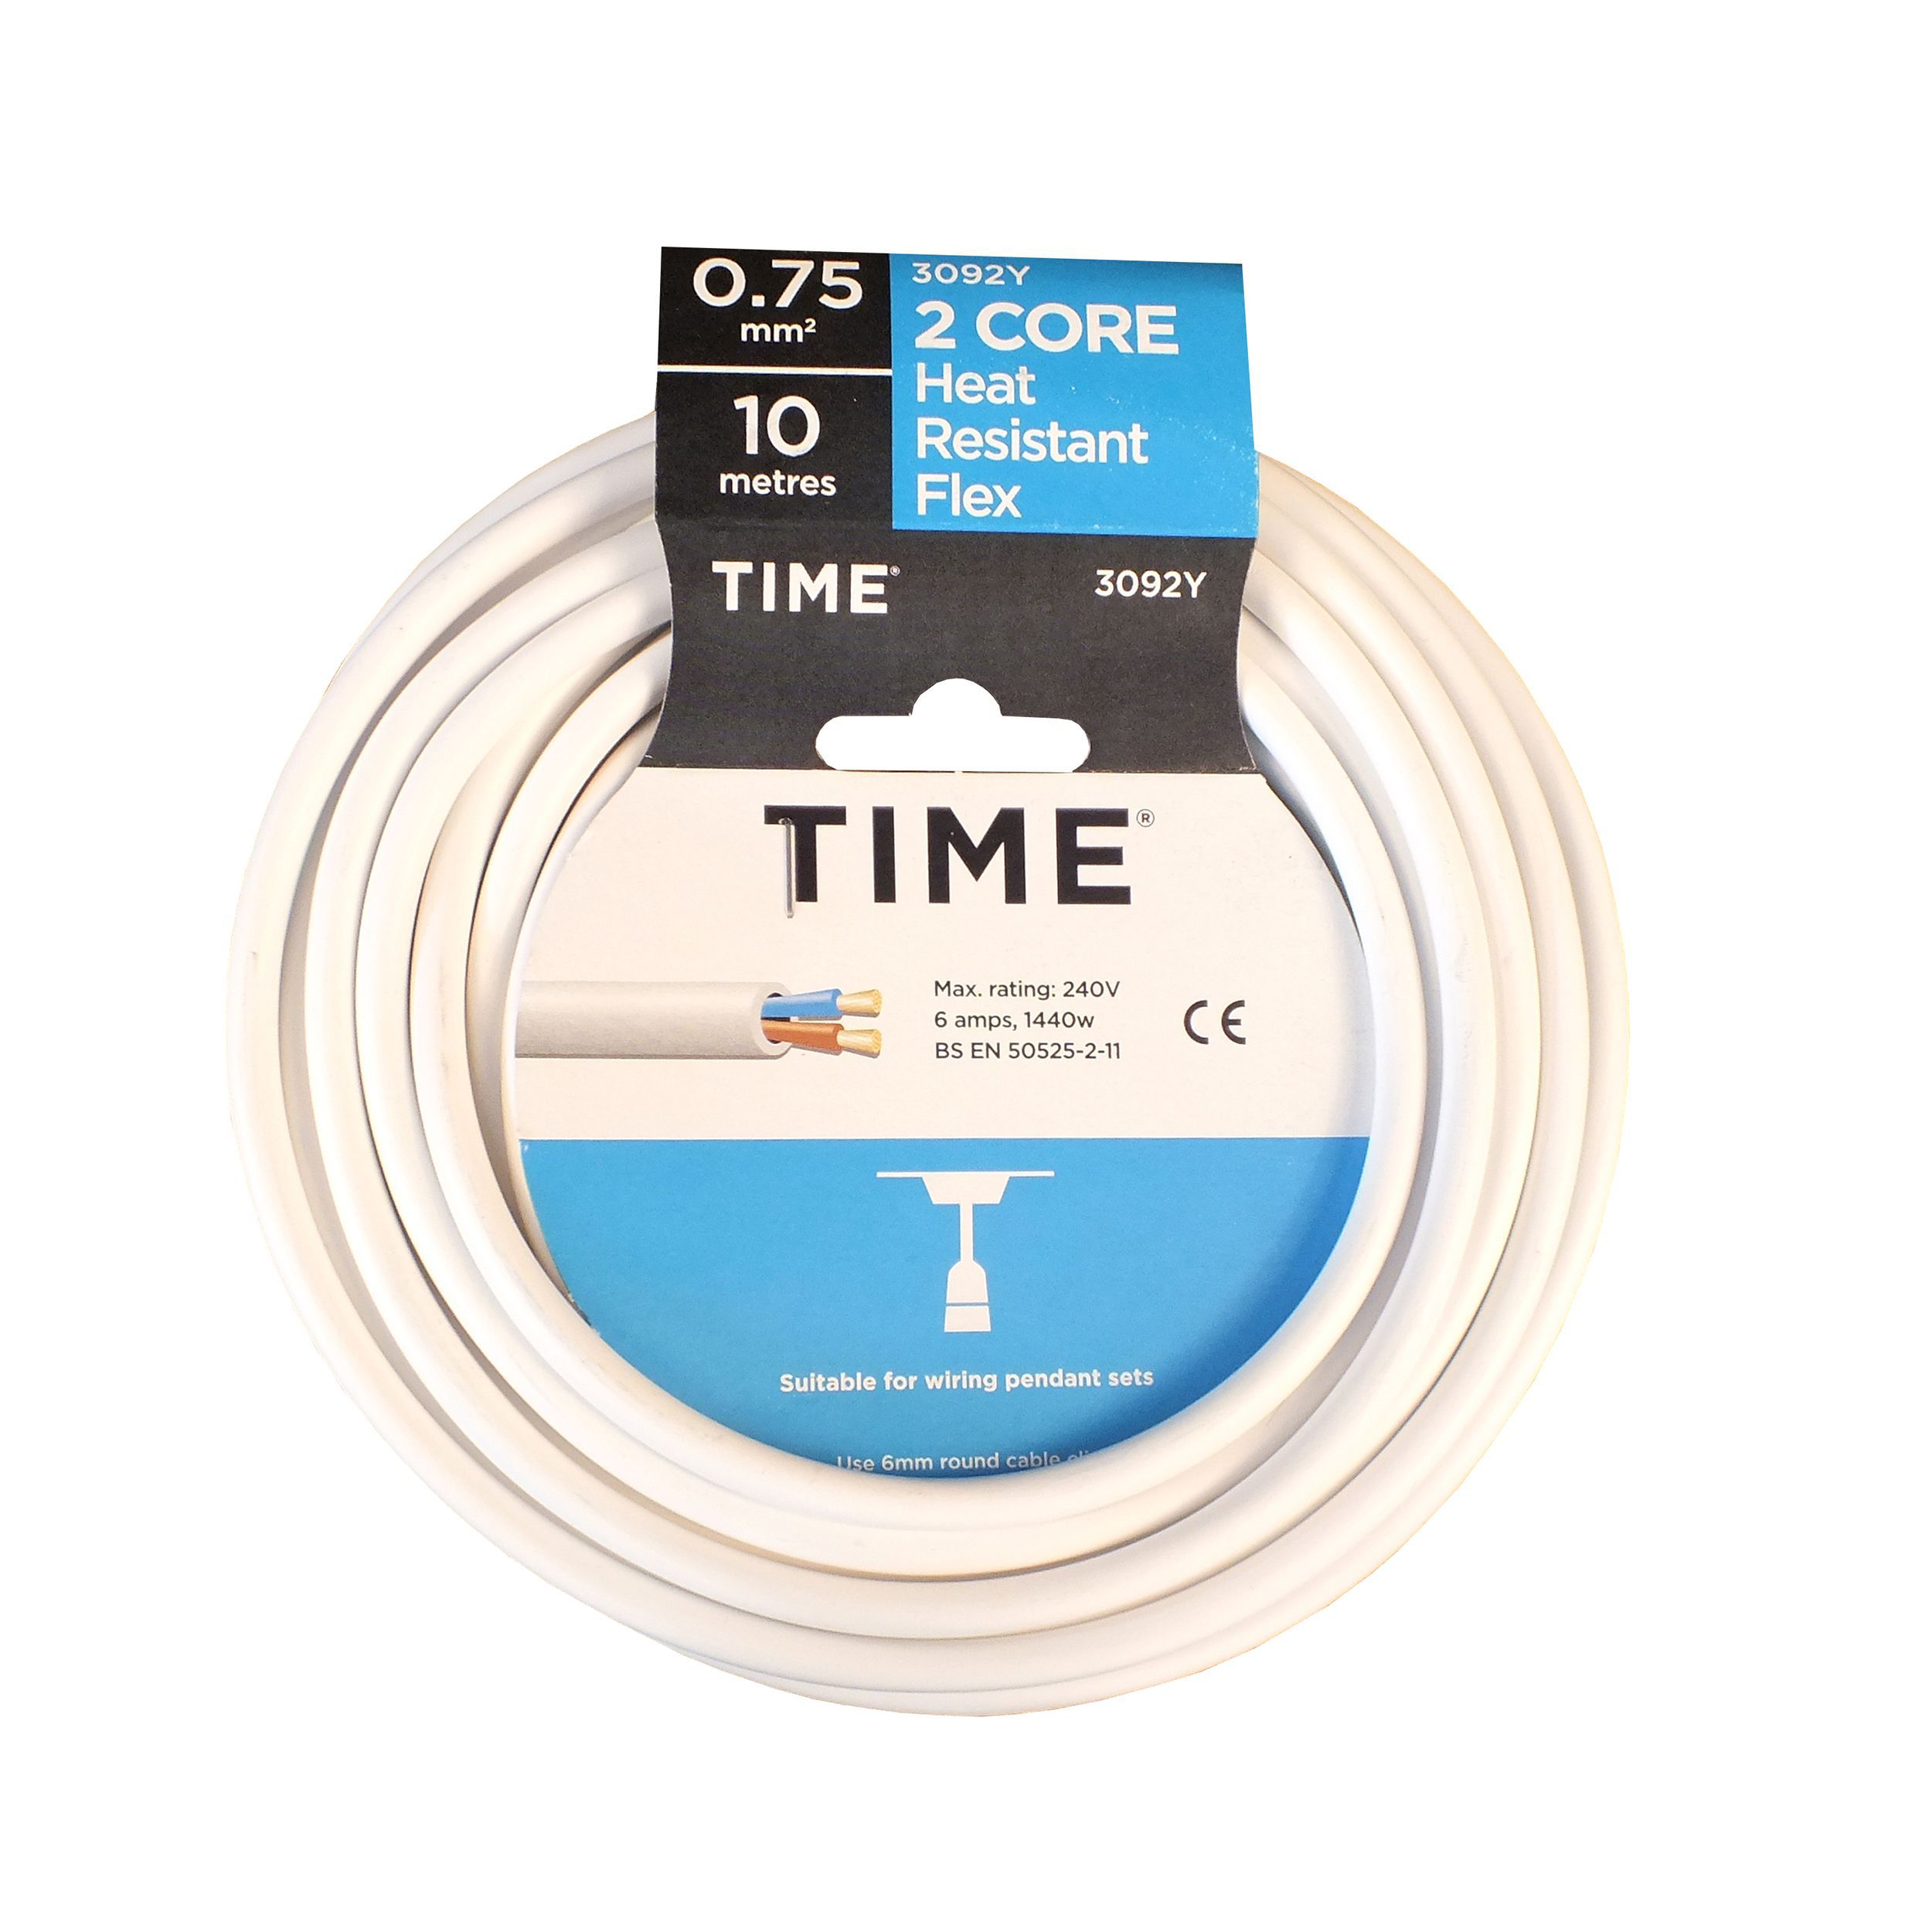 Time 2 core Heat resistant flexible cable 0.75mm² 3092Y White 10 m ...